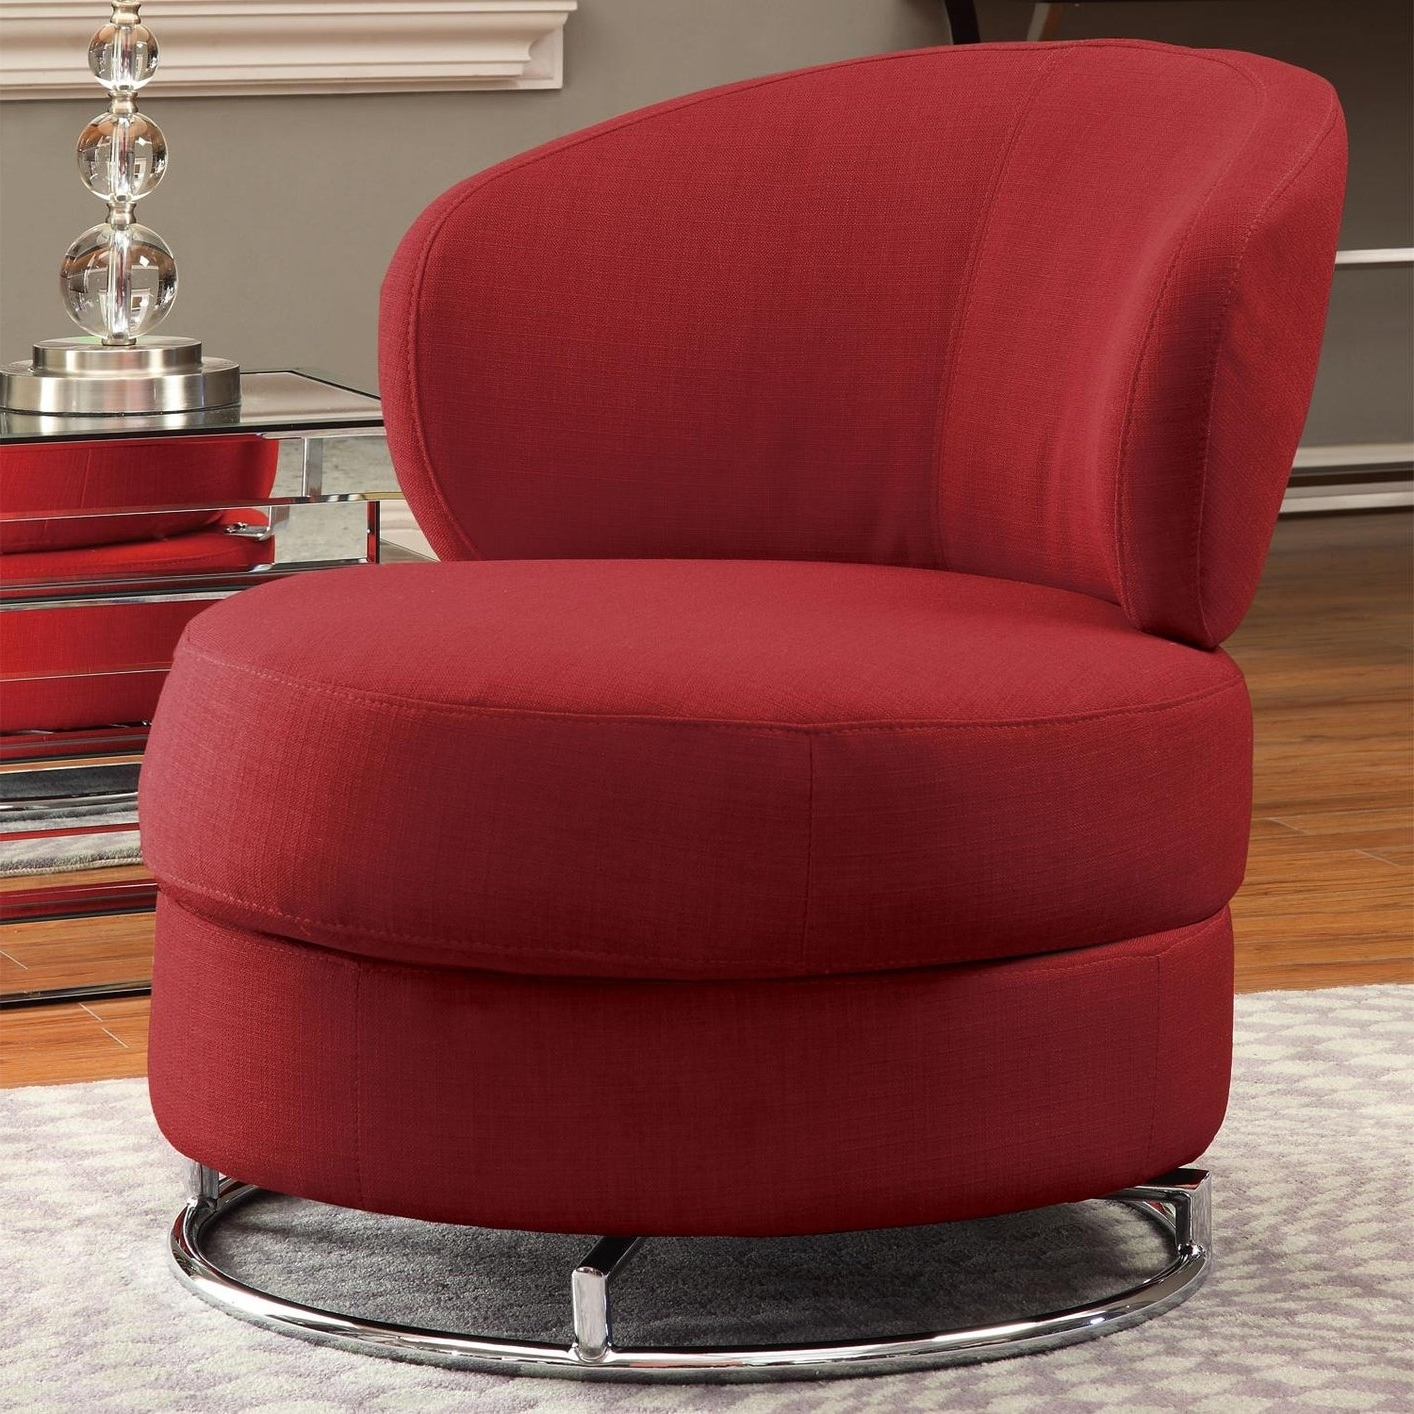 Newest Swivel Sofa Chairs Pertaining To Red Fabric Swivel Chair – Steal A Sofa Furniture Outlet Los Angeles Ca (View 11 of 20)